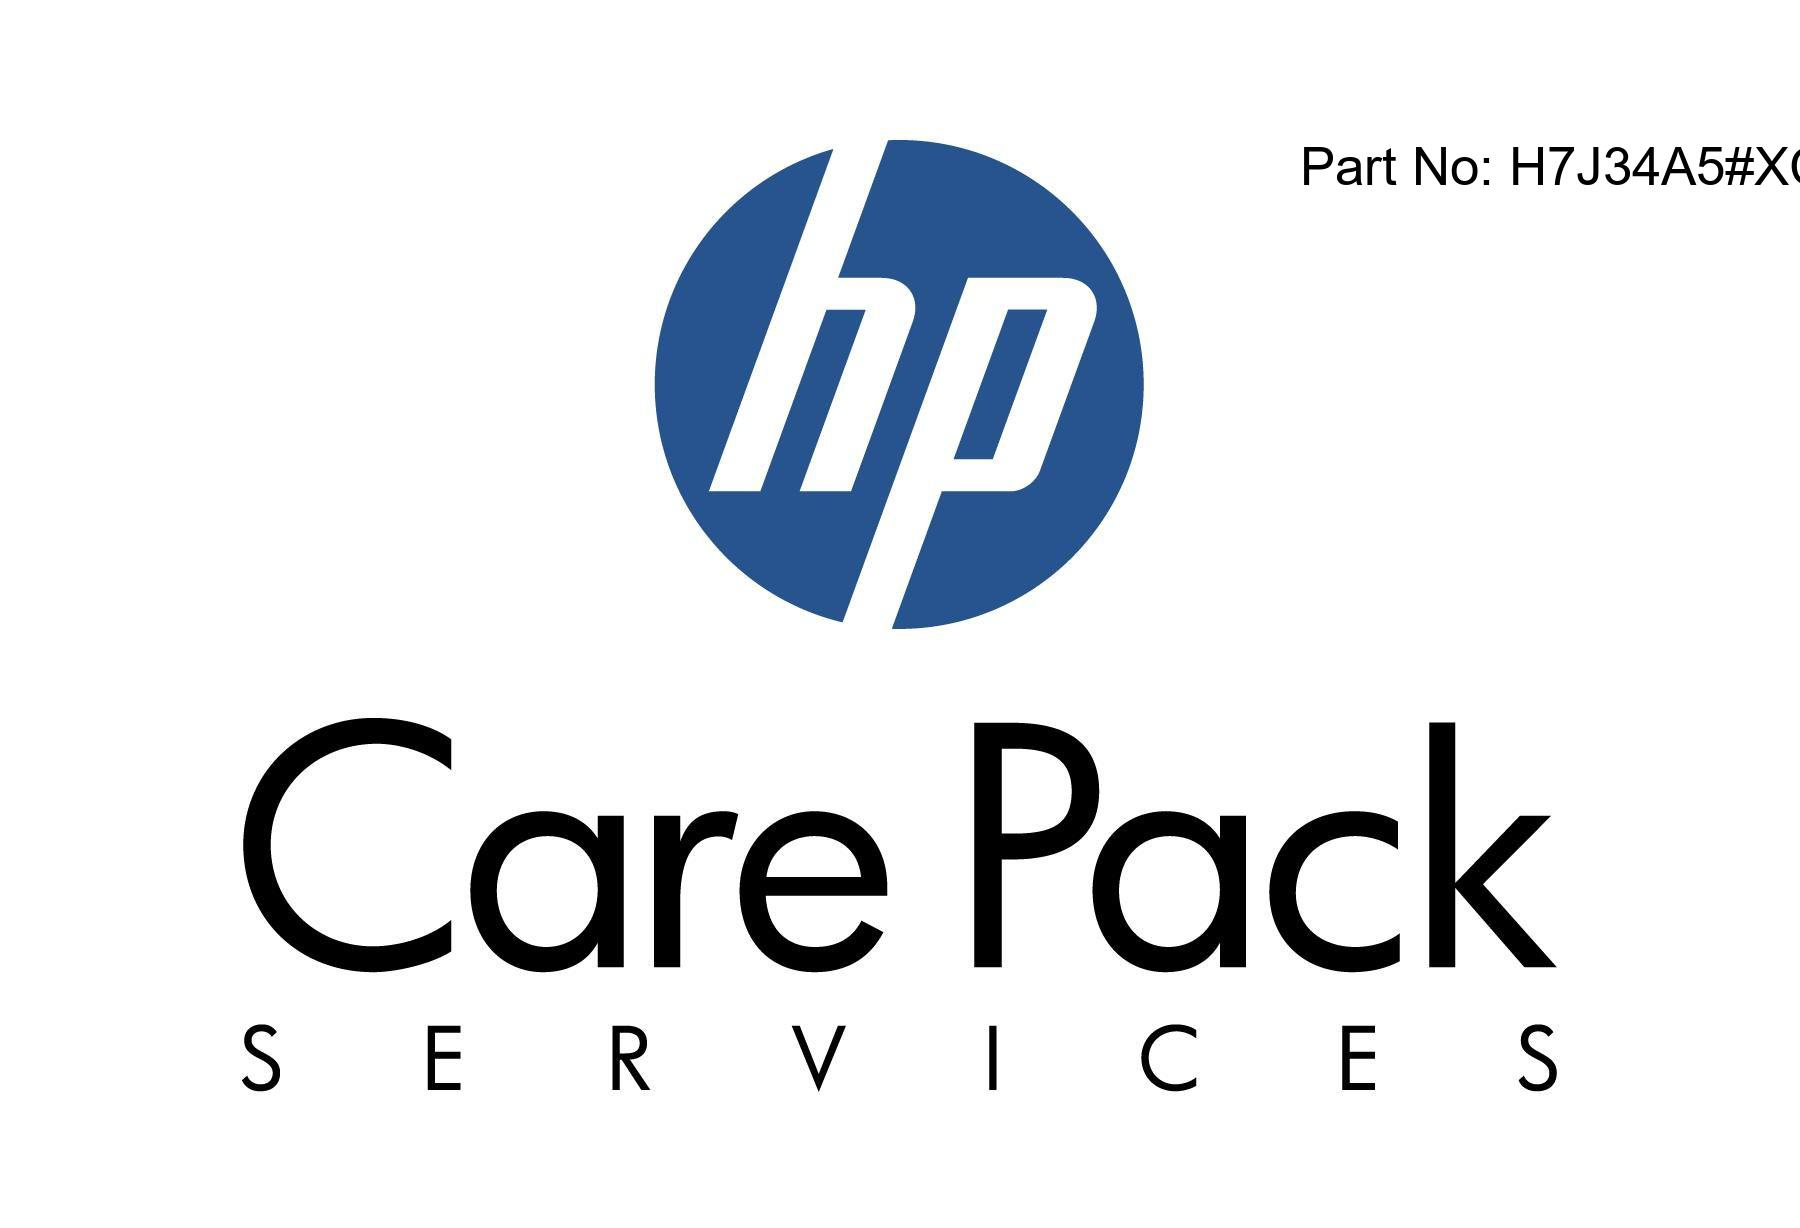 Foundation Care Software Support 24x7 - Technical support - for HPE 3PAR 8400 Remote Copy - 8 drives - phone consulting - 5 years - 24x7 - response time: 2 h